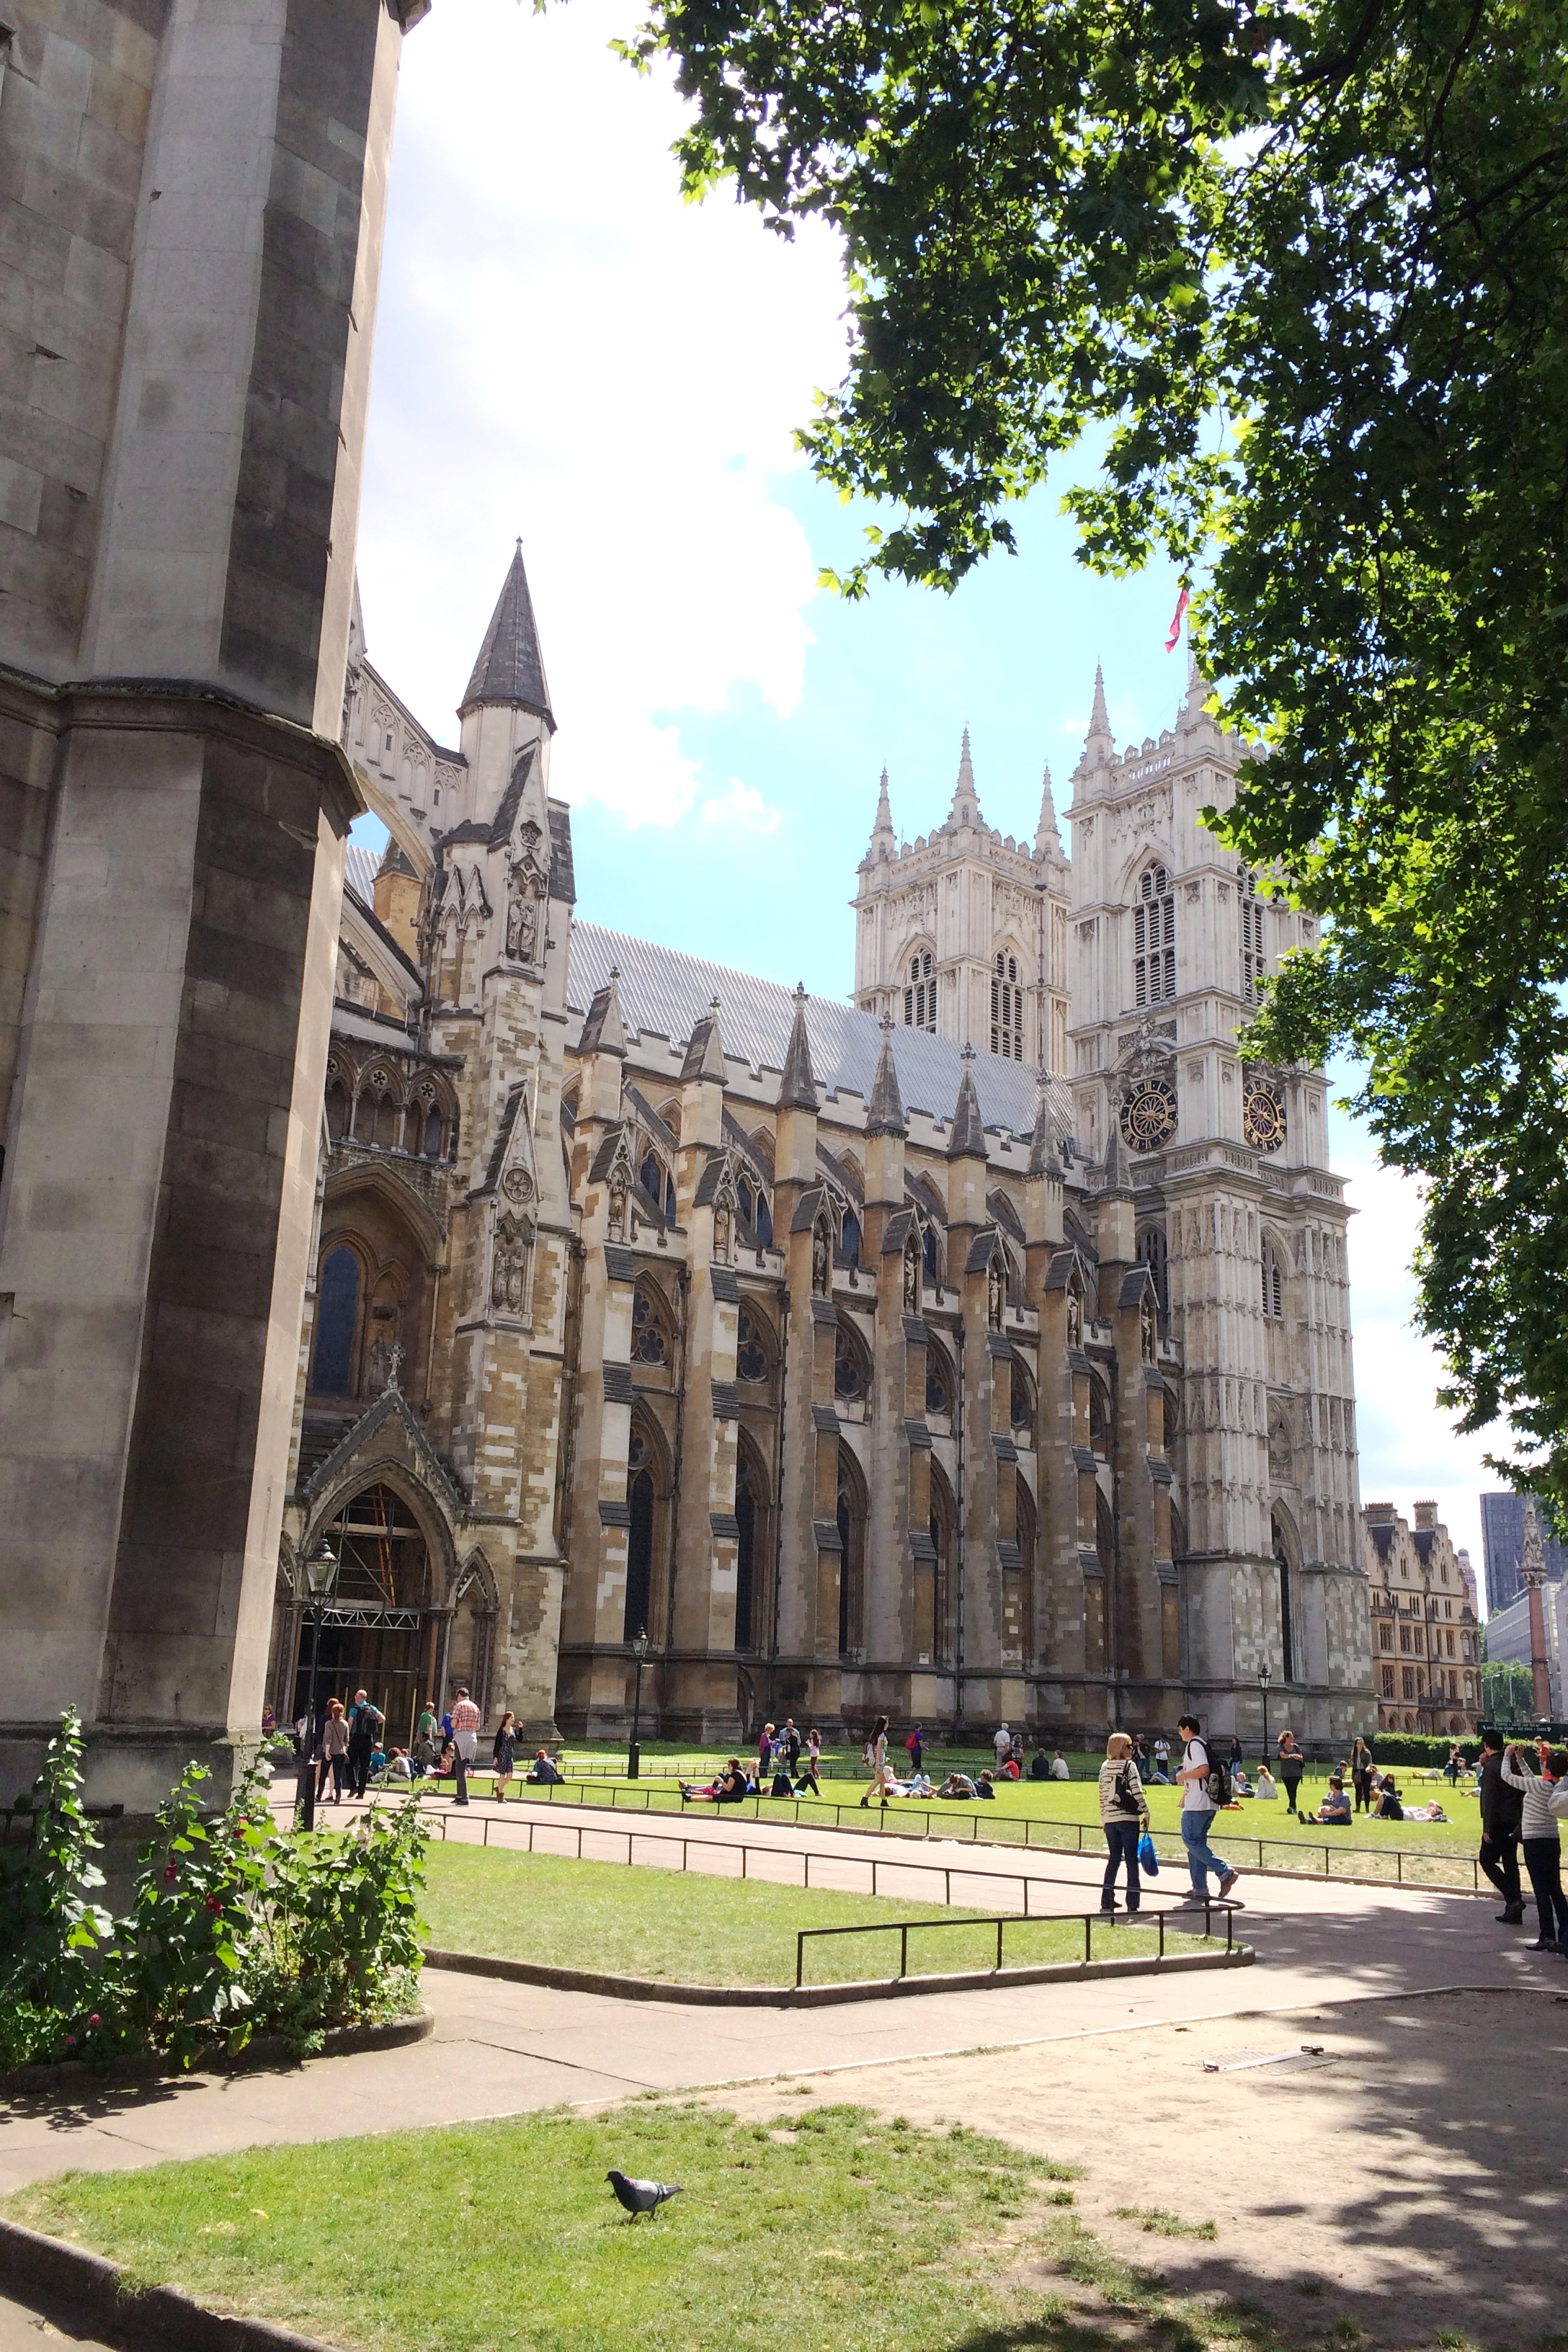 Westminster Abbey (I always want to call it West-Minister, as pronounced by my friend Evah in Maryland :)